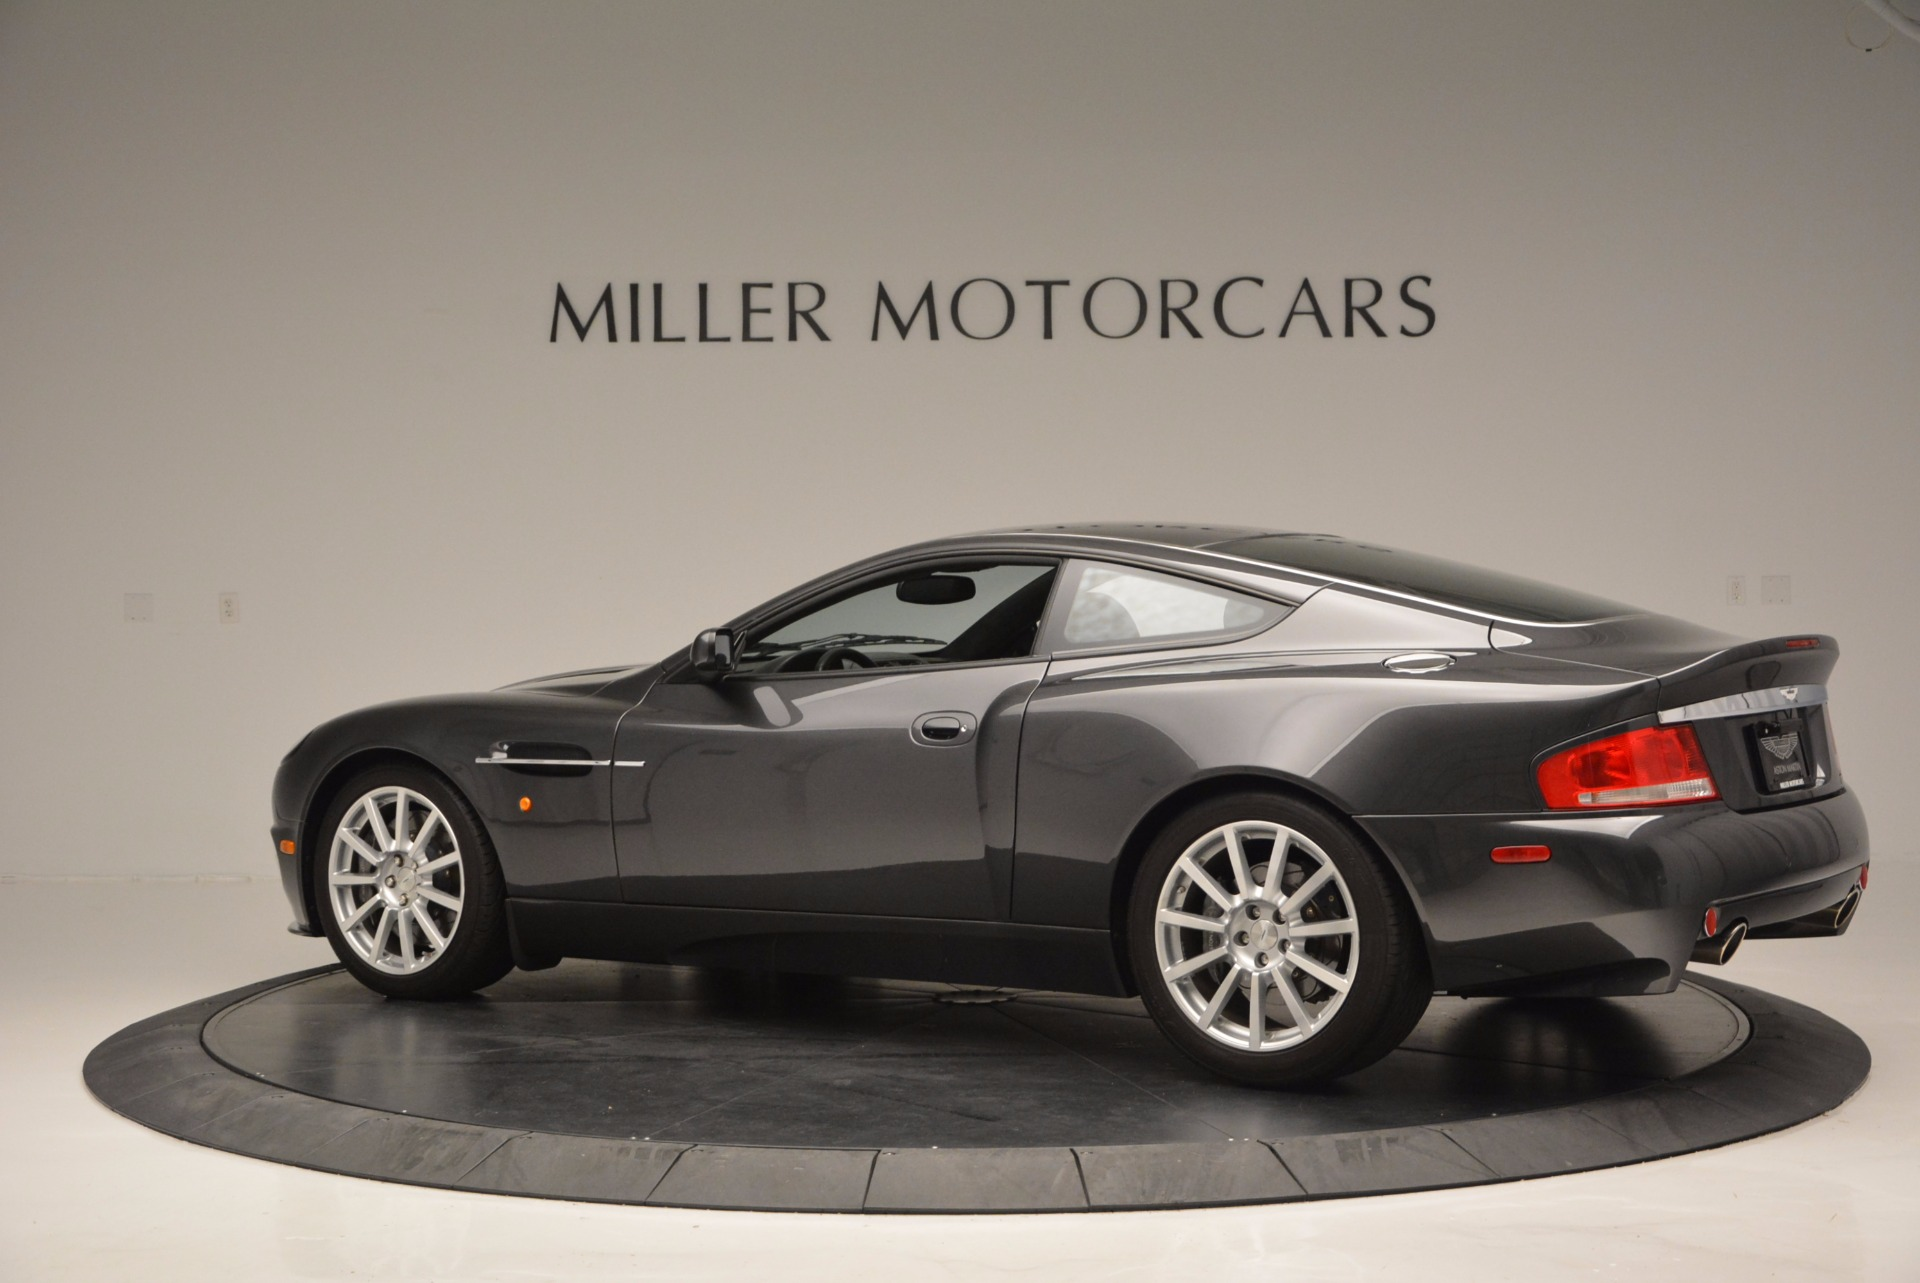 Pre Owned 2005 Aston Martin V12 Vanquish S For Sale Special Pricing Mclaren Greenwich Stock 7097